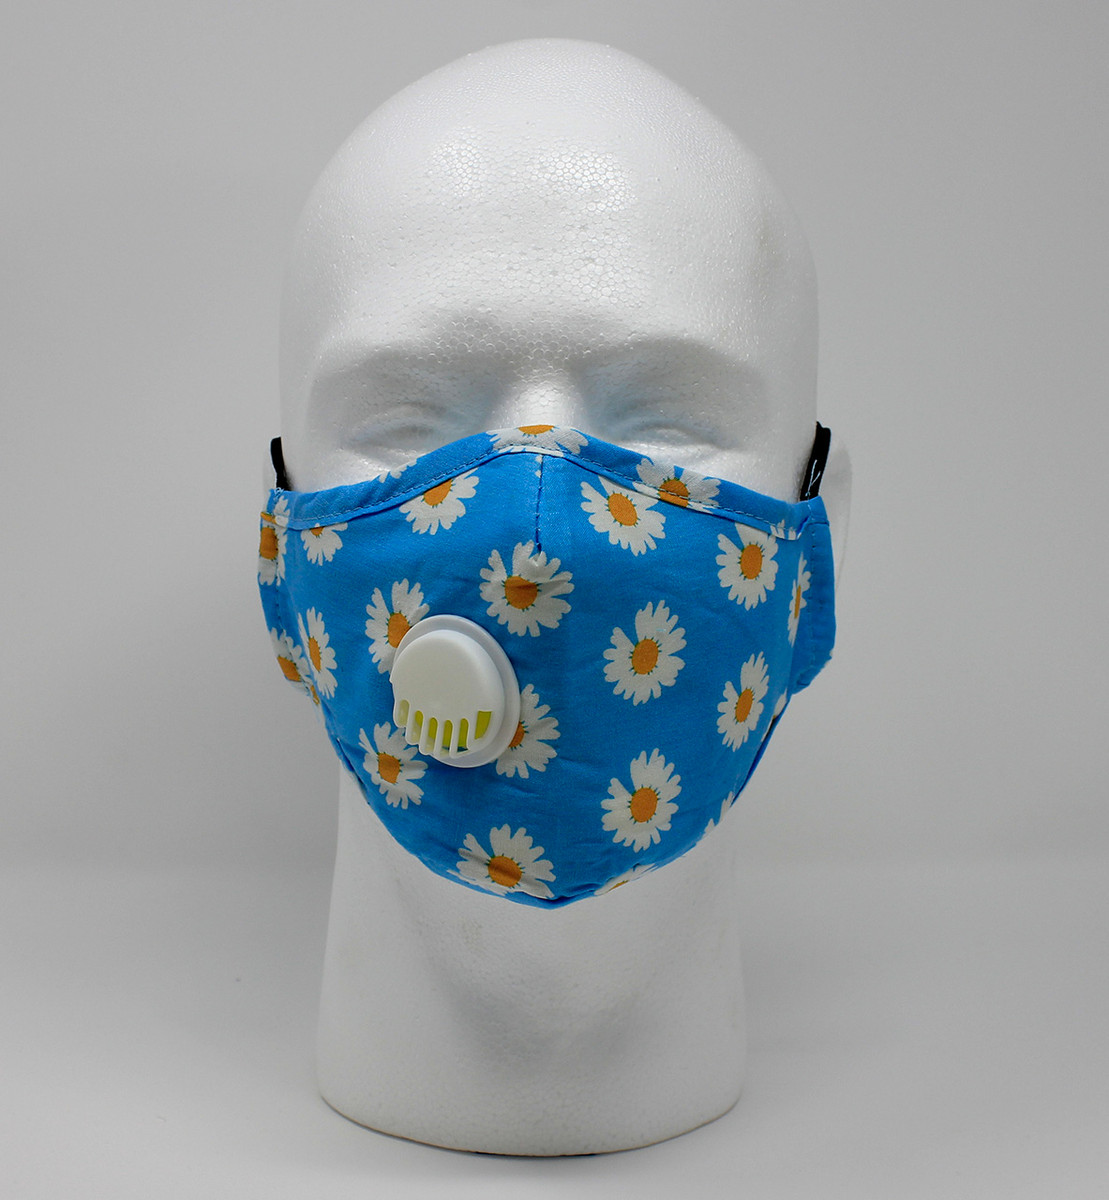 Vented Graphic Fashion Masks - Blue/Gold Daisy